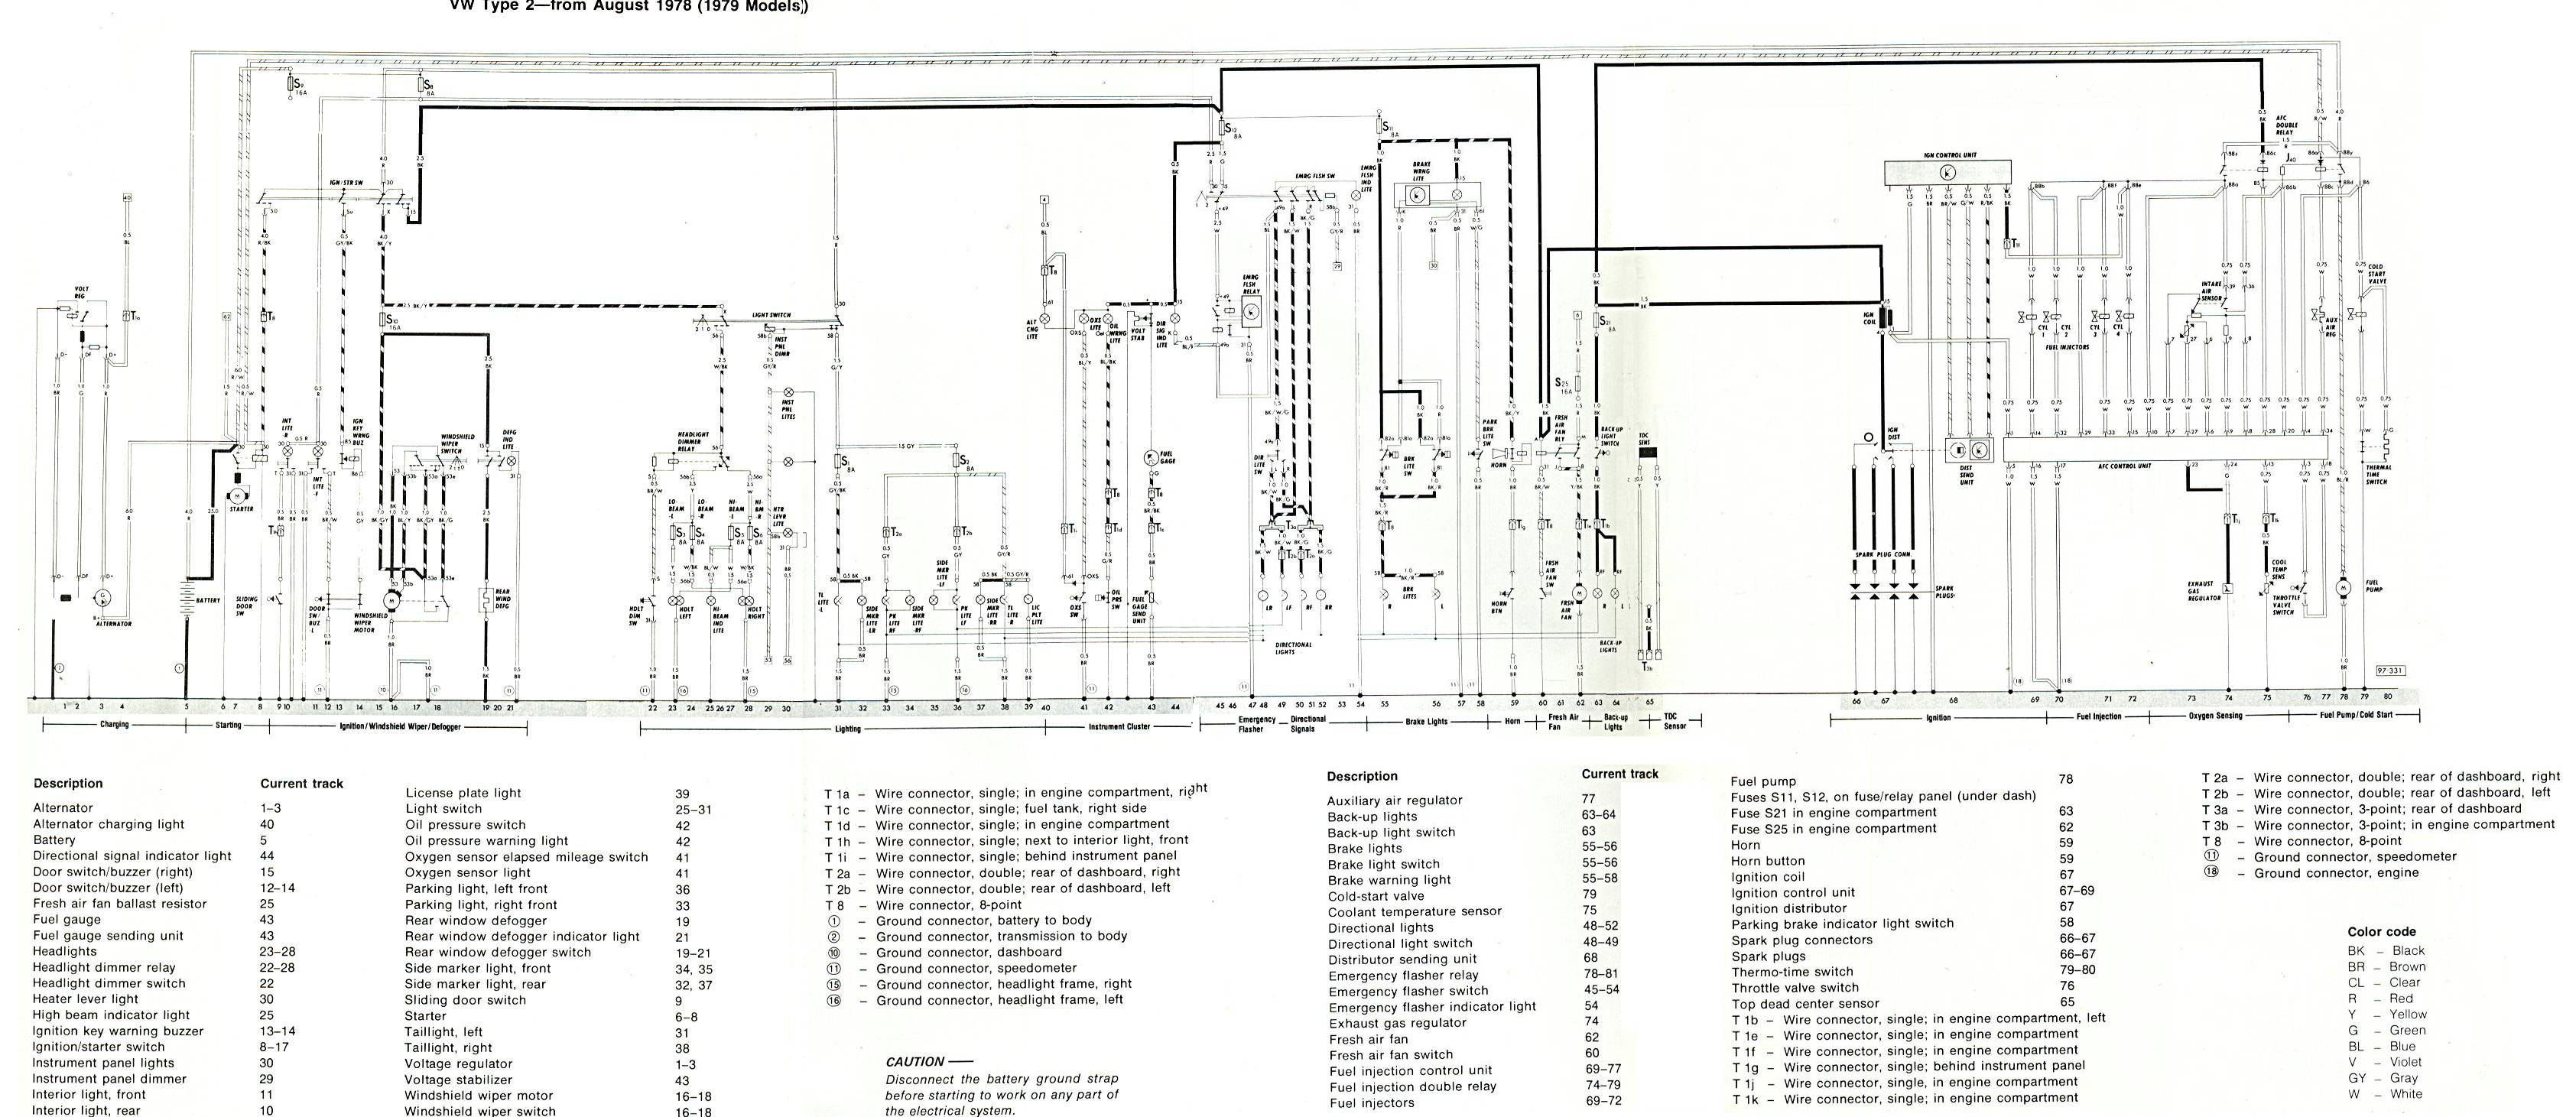 wiring diagram hi guys just trying to understand this diagram